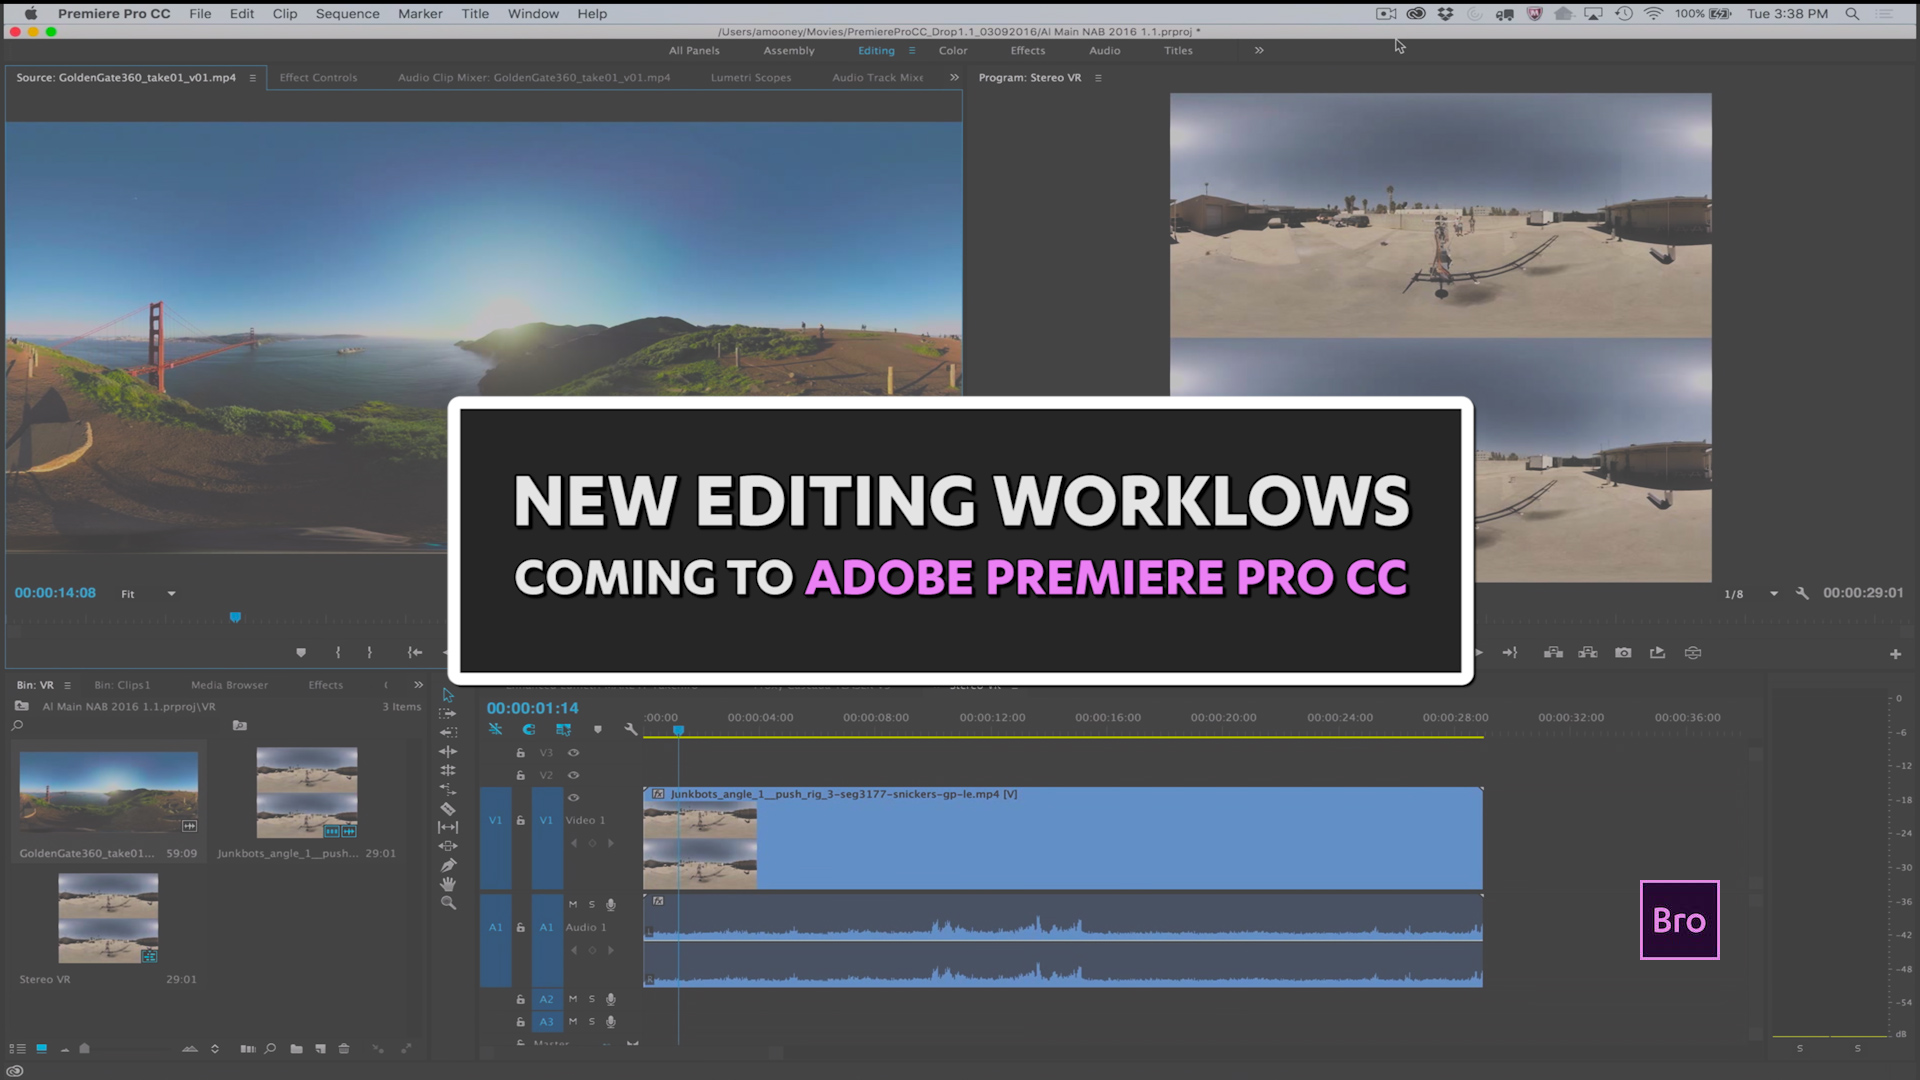 The next release of Premiere Pro CC is all about workflows.This post digs into the highlights of what's coming next to Adobe Premiere Pro CC.